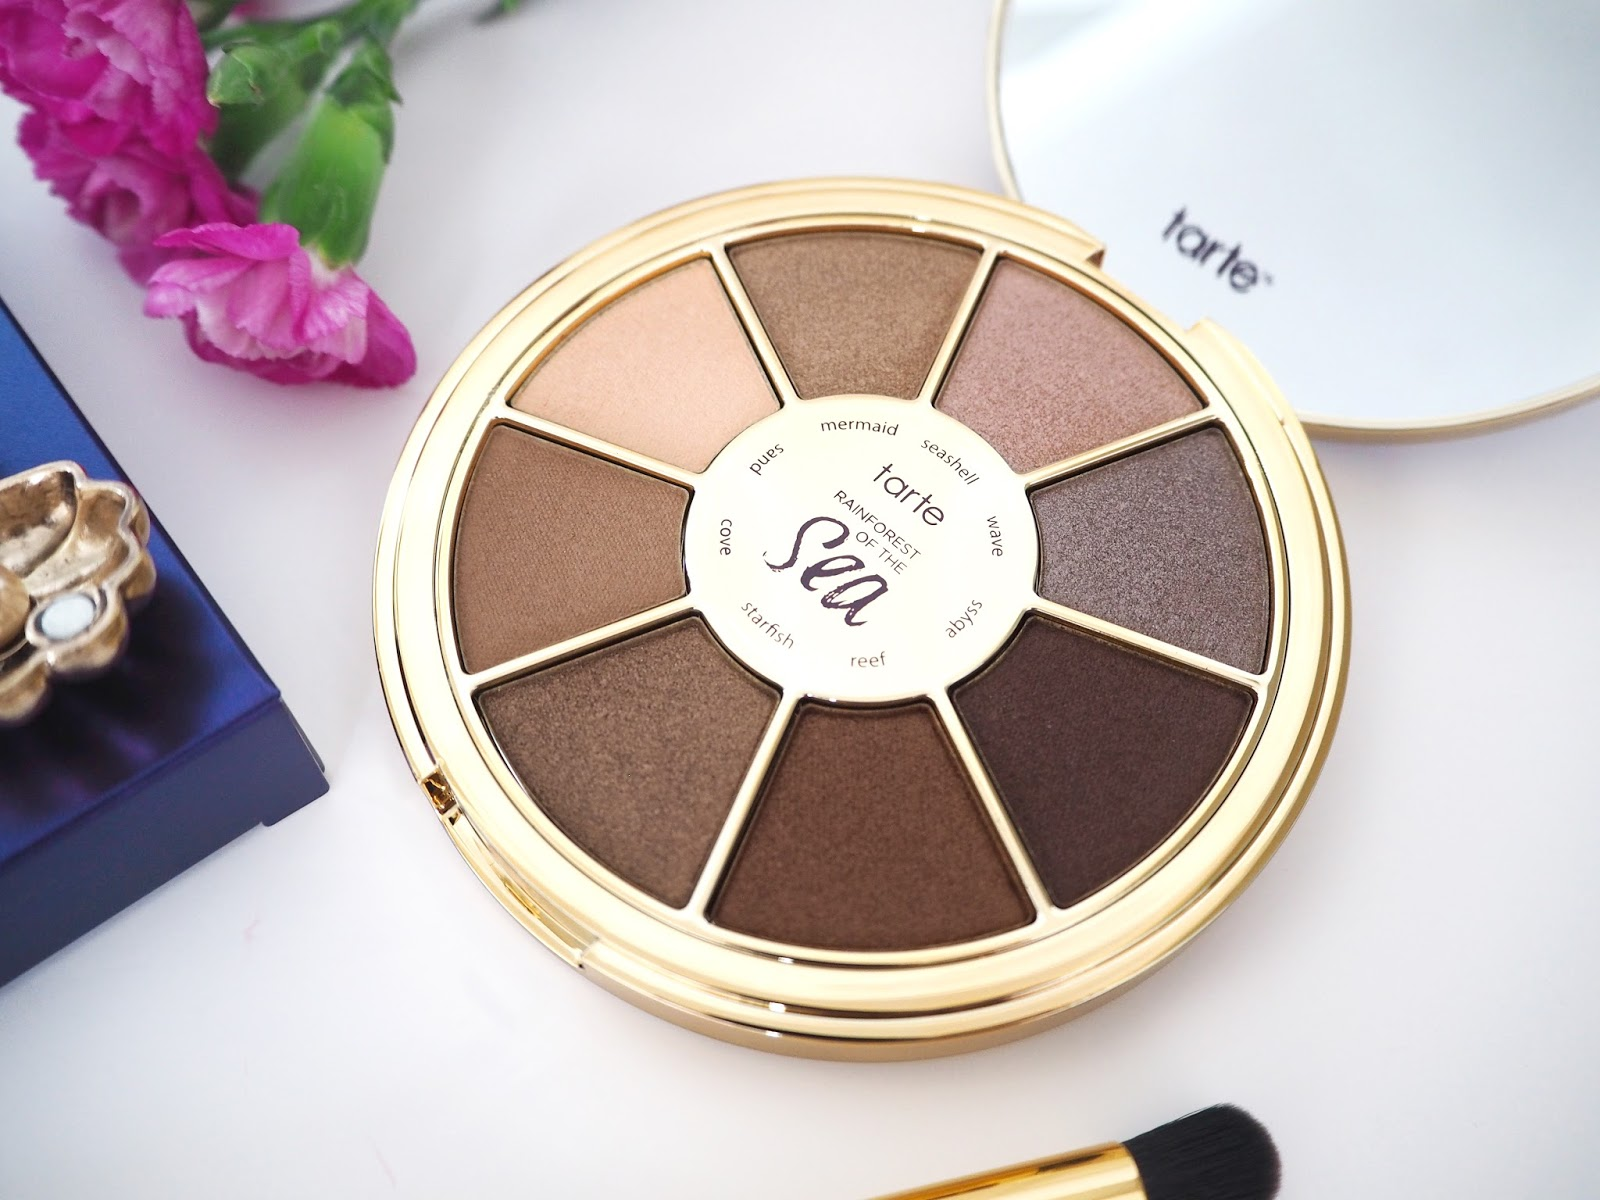 Tarte Rainforest of the Sea Shadow Palette, Tarte Cosmetics, Eye Shadow Palette, Loves List: August | Katie Kirk Loves